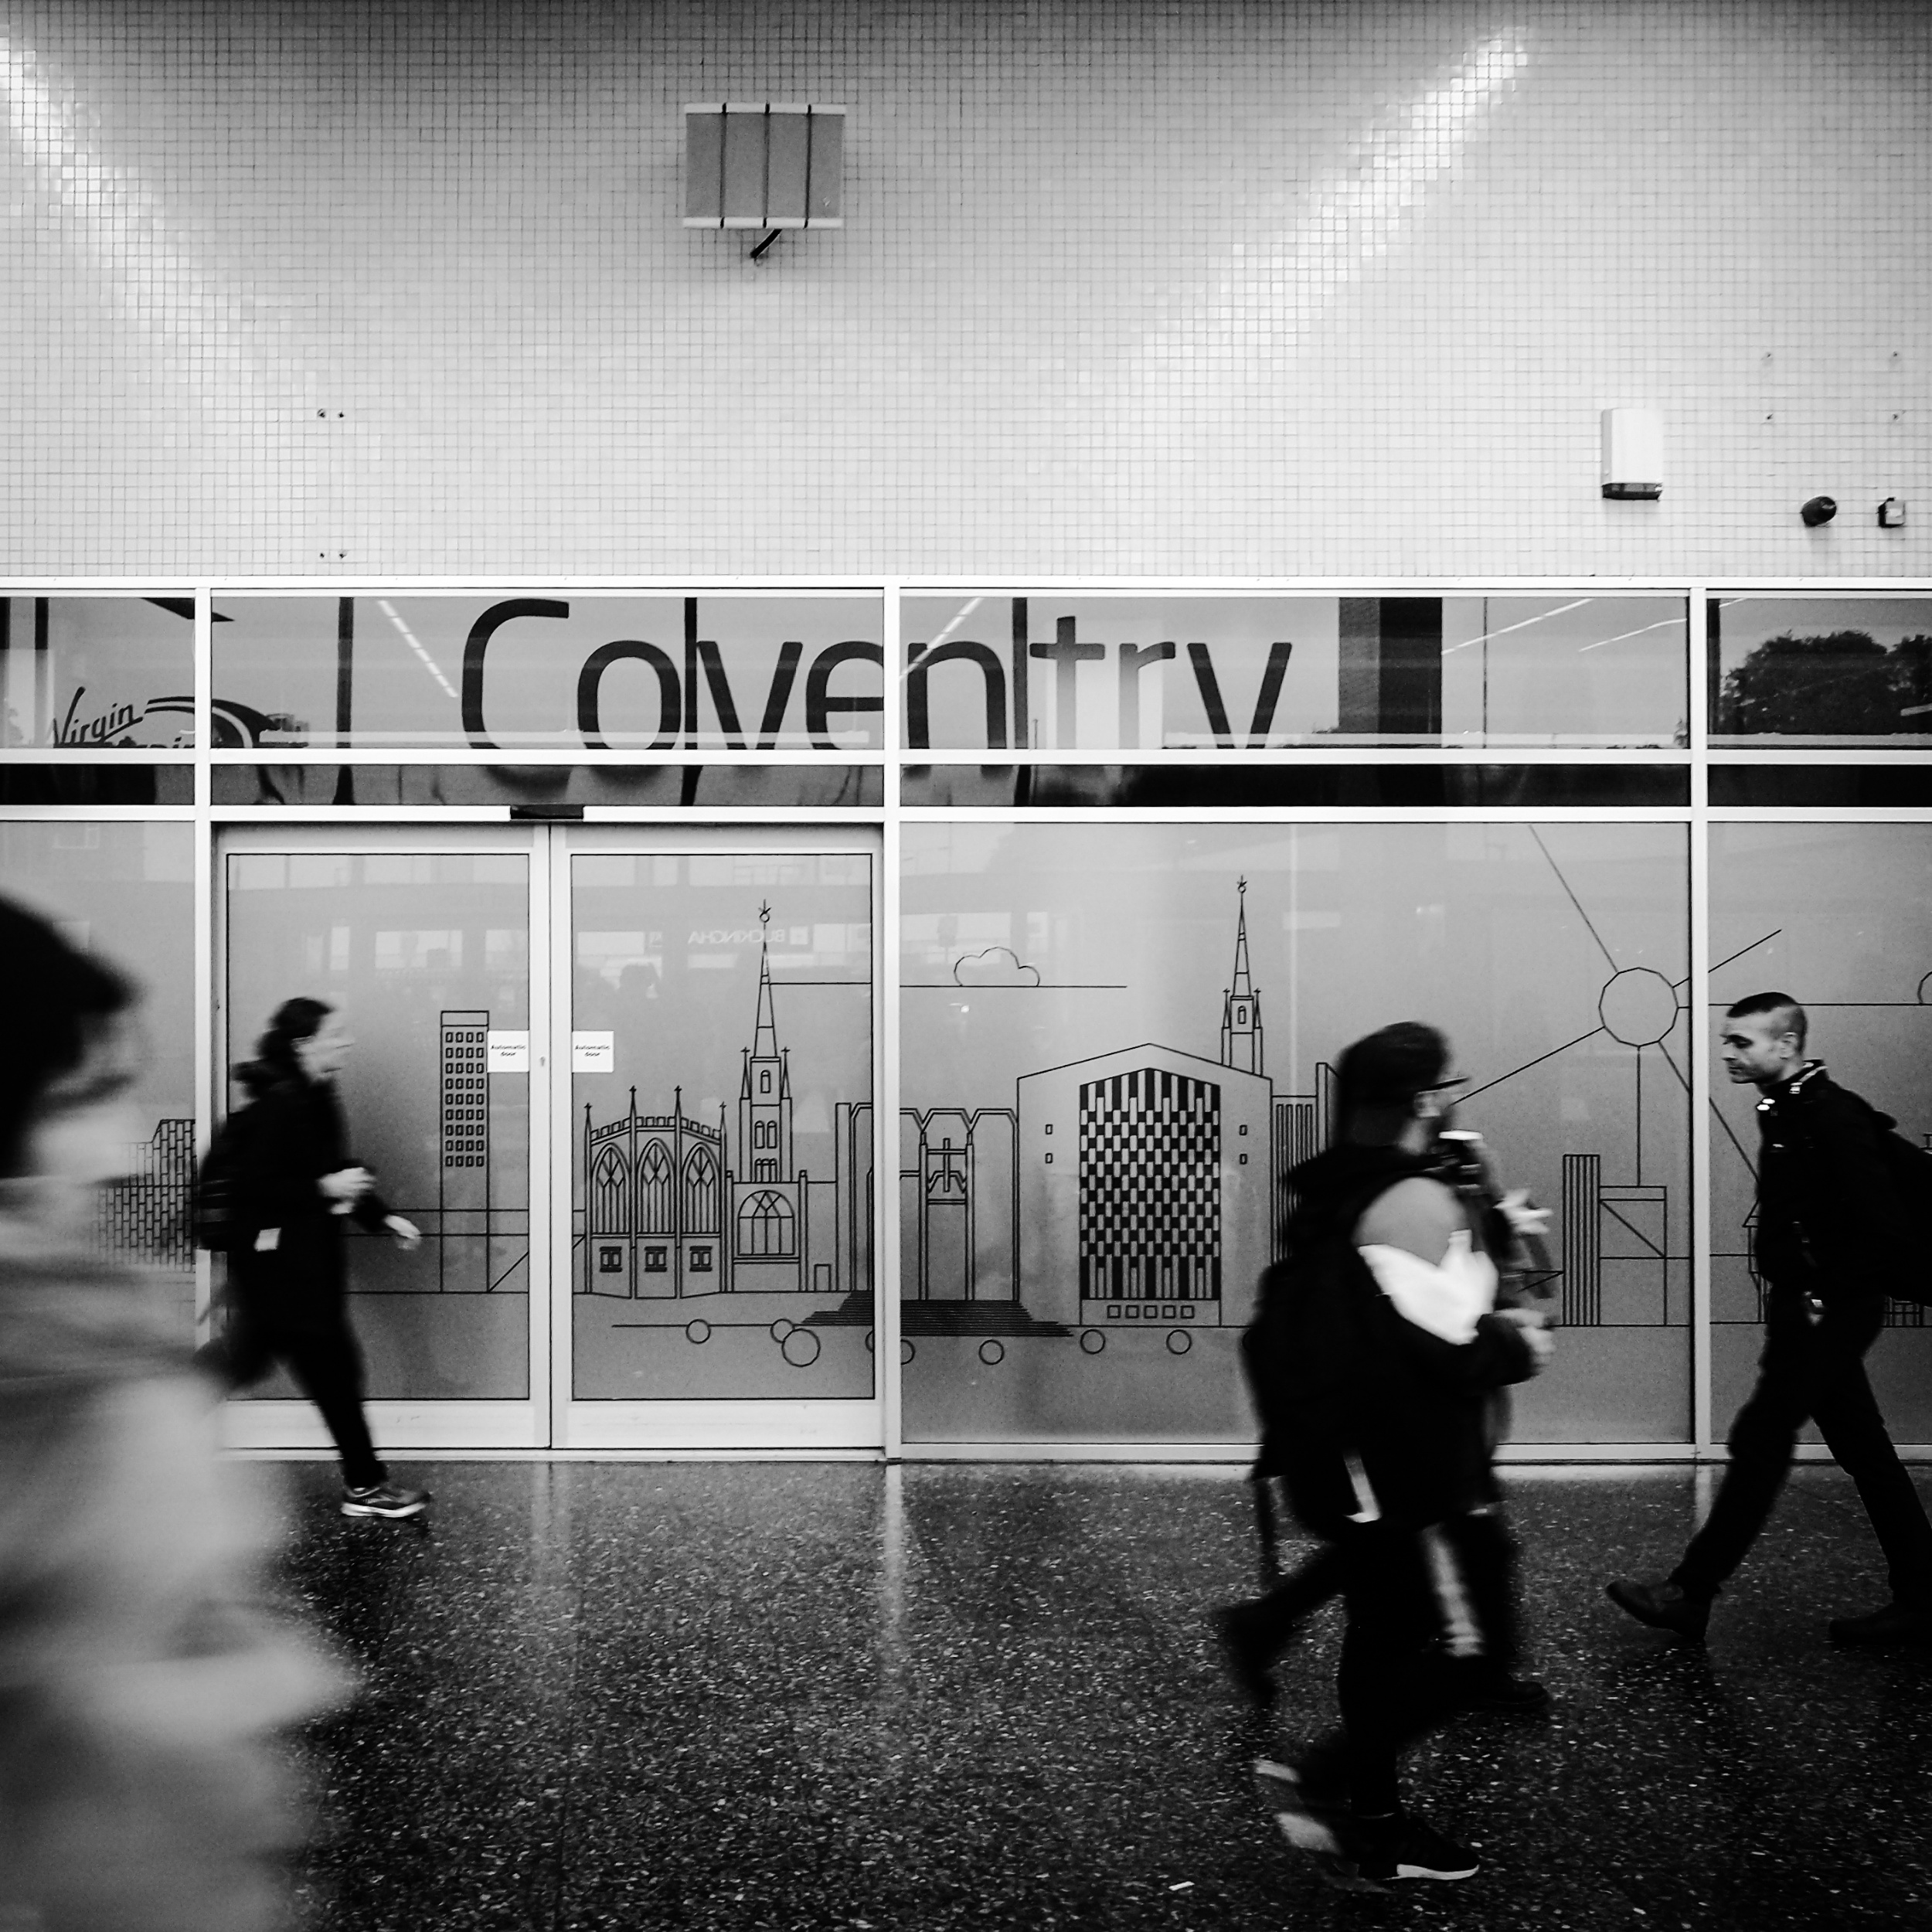 Coventry Rail Station